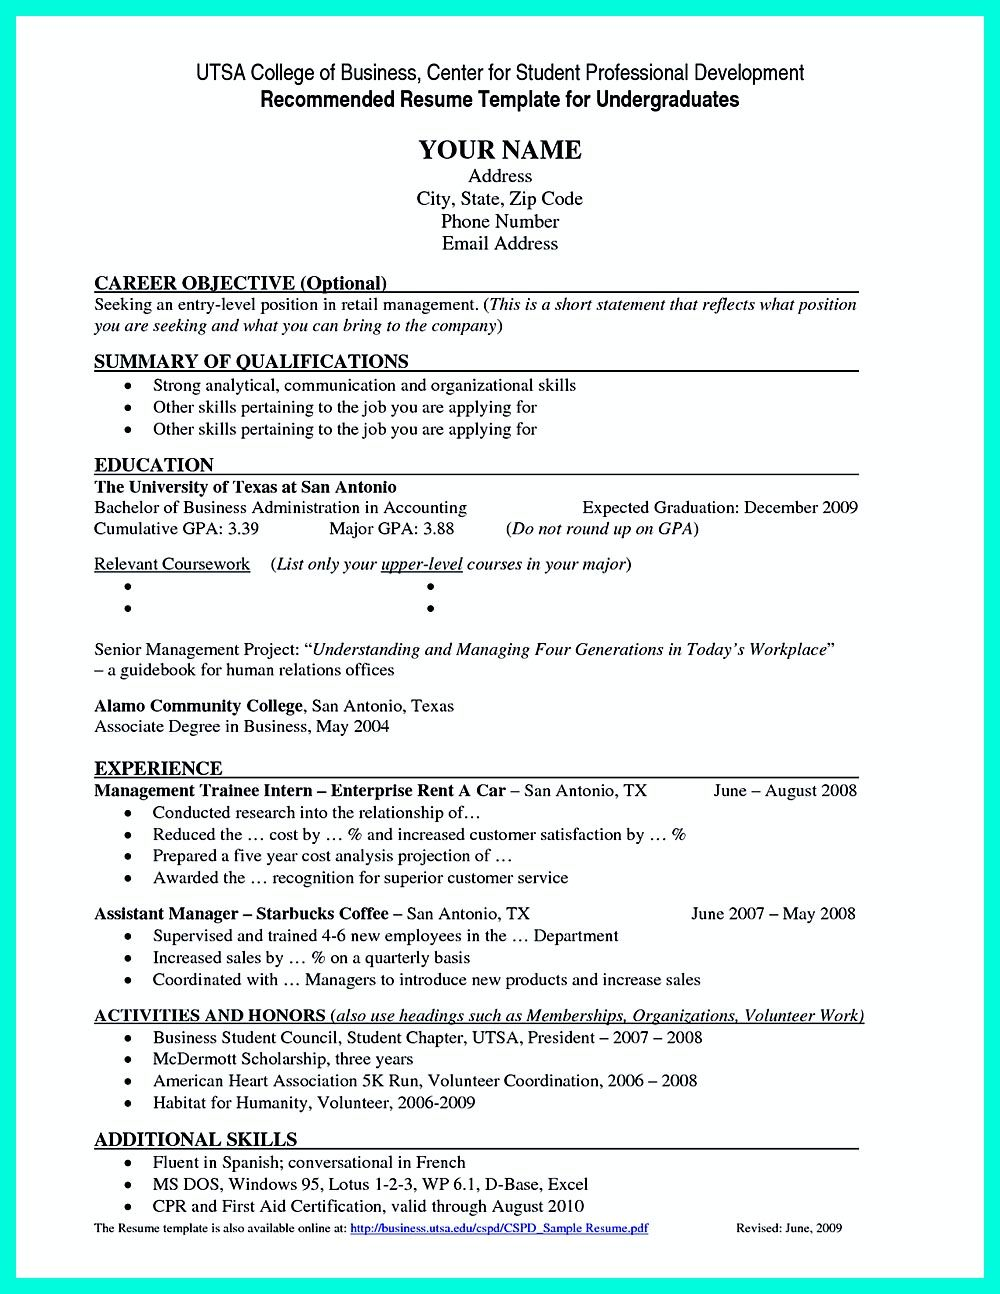 resume for college job